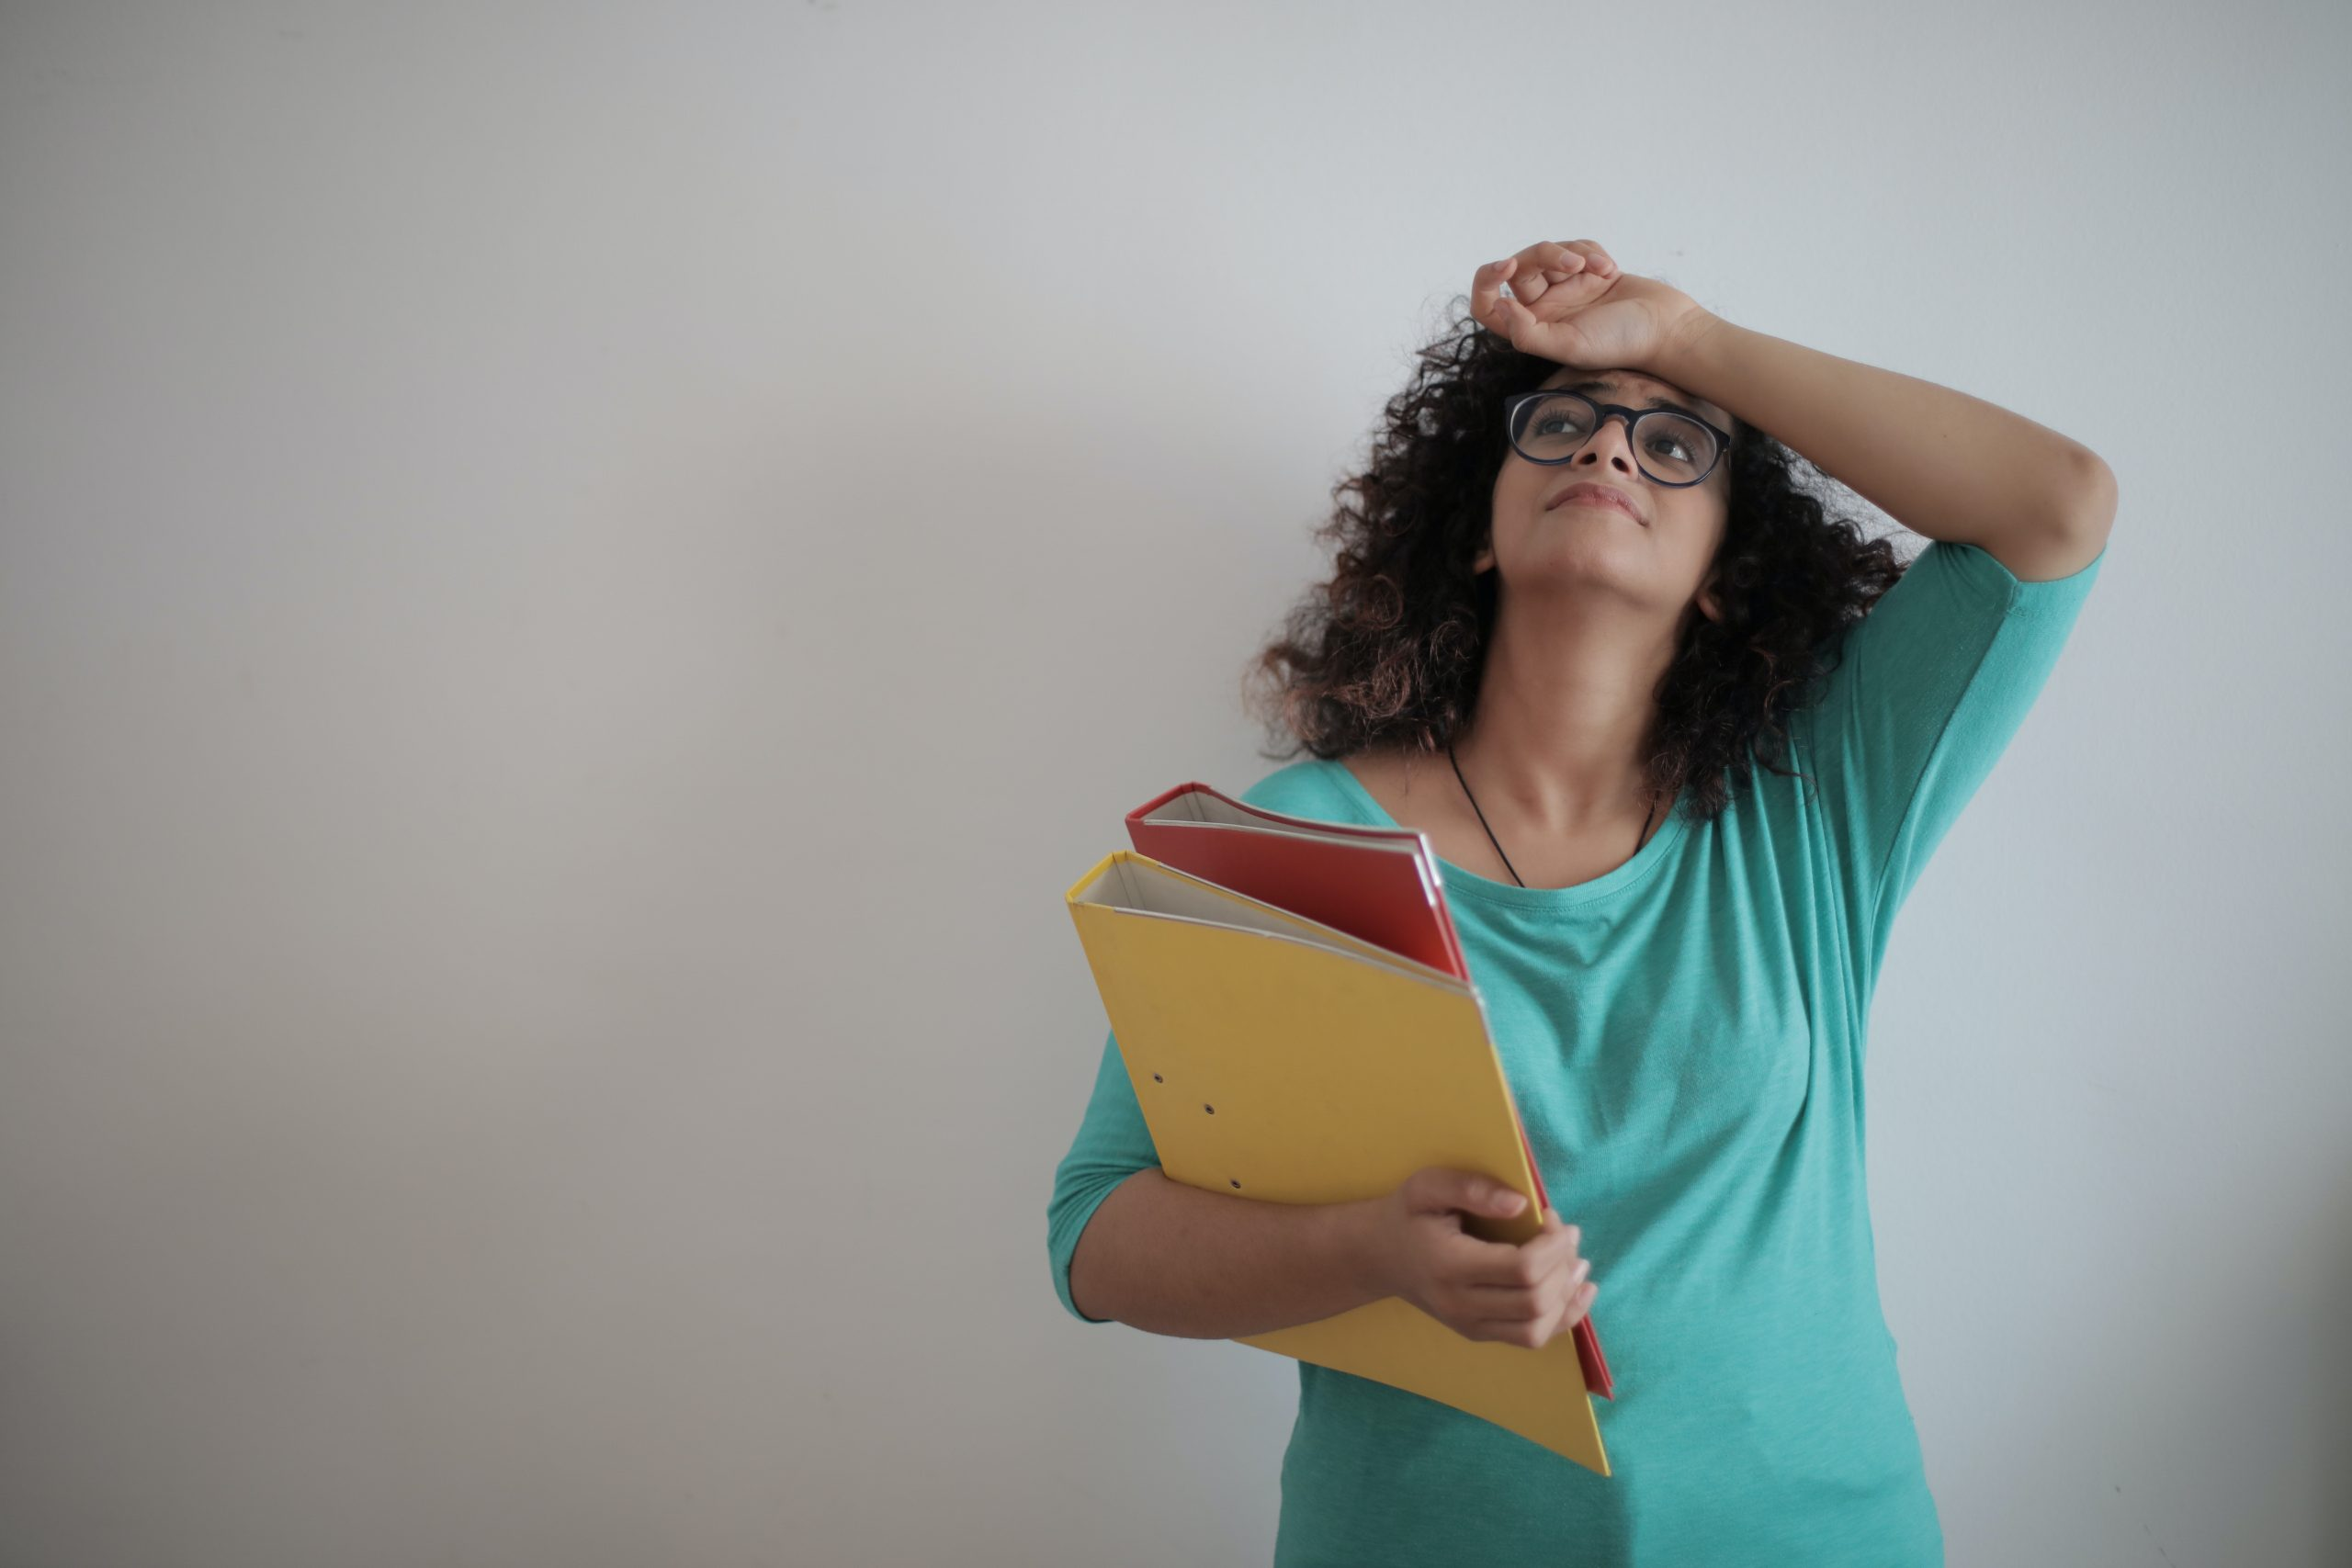 overworked-adult-female-entrepreneur-with-papers-in-light-3808819